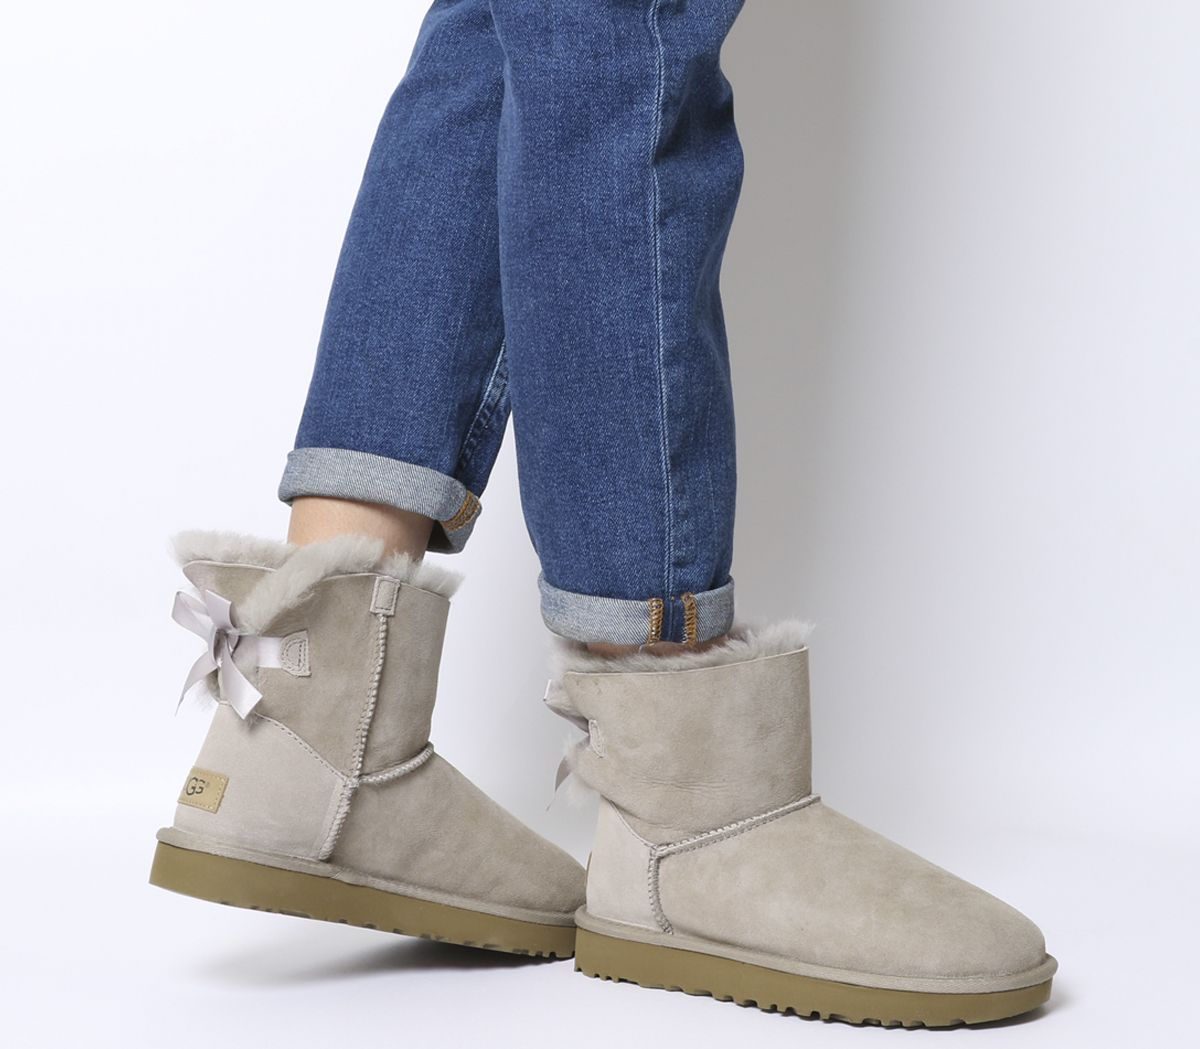 41a9cf90794 Mini Bailey Bow Boots